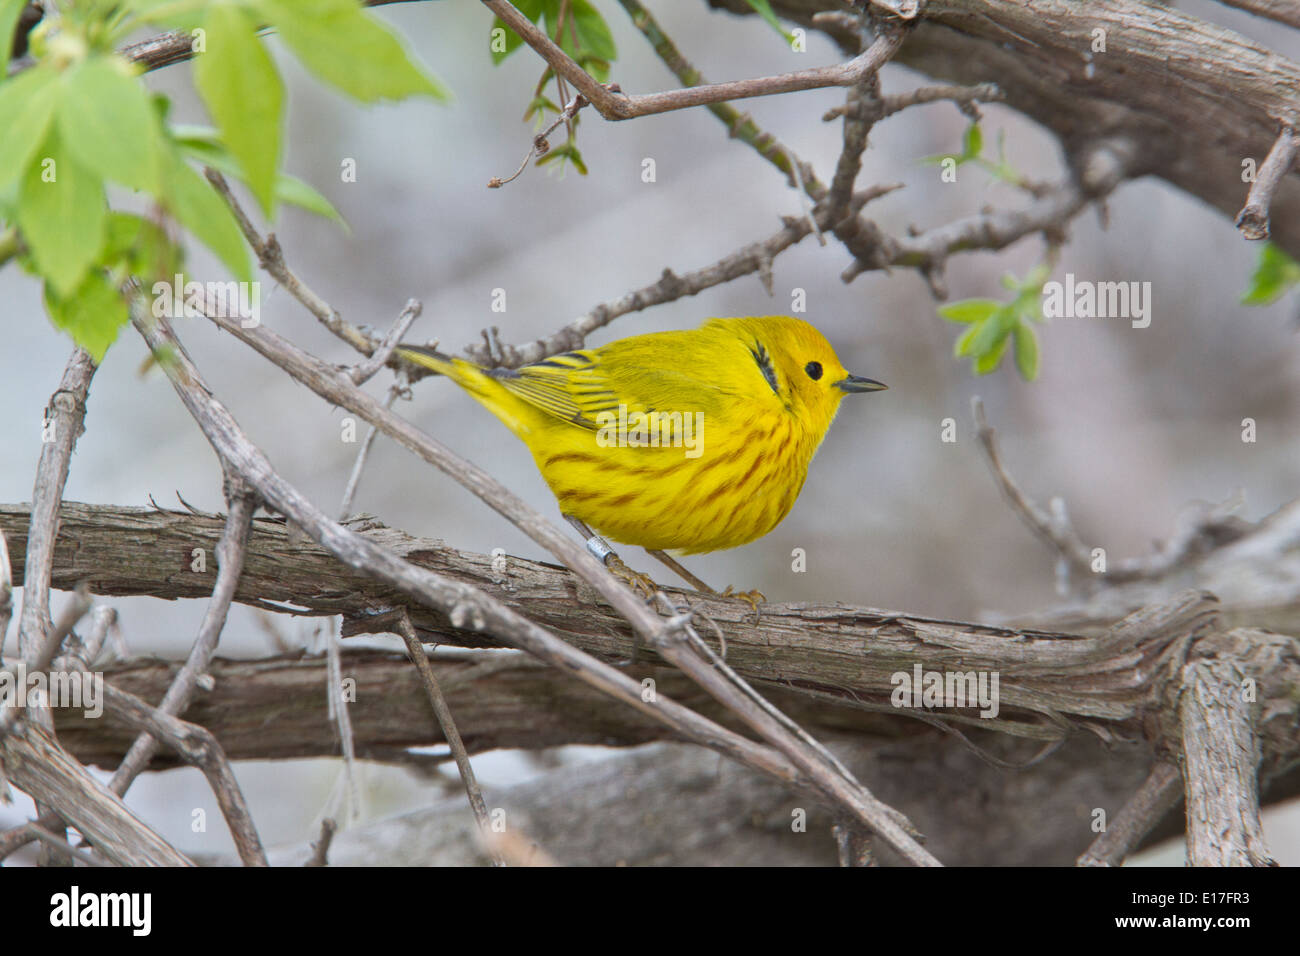 Male yellow warbler (Setophaga petechia) on tree branch, during the Spring migration, Magee Marsh, Ohio. - Stock Image